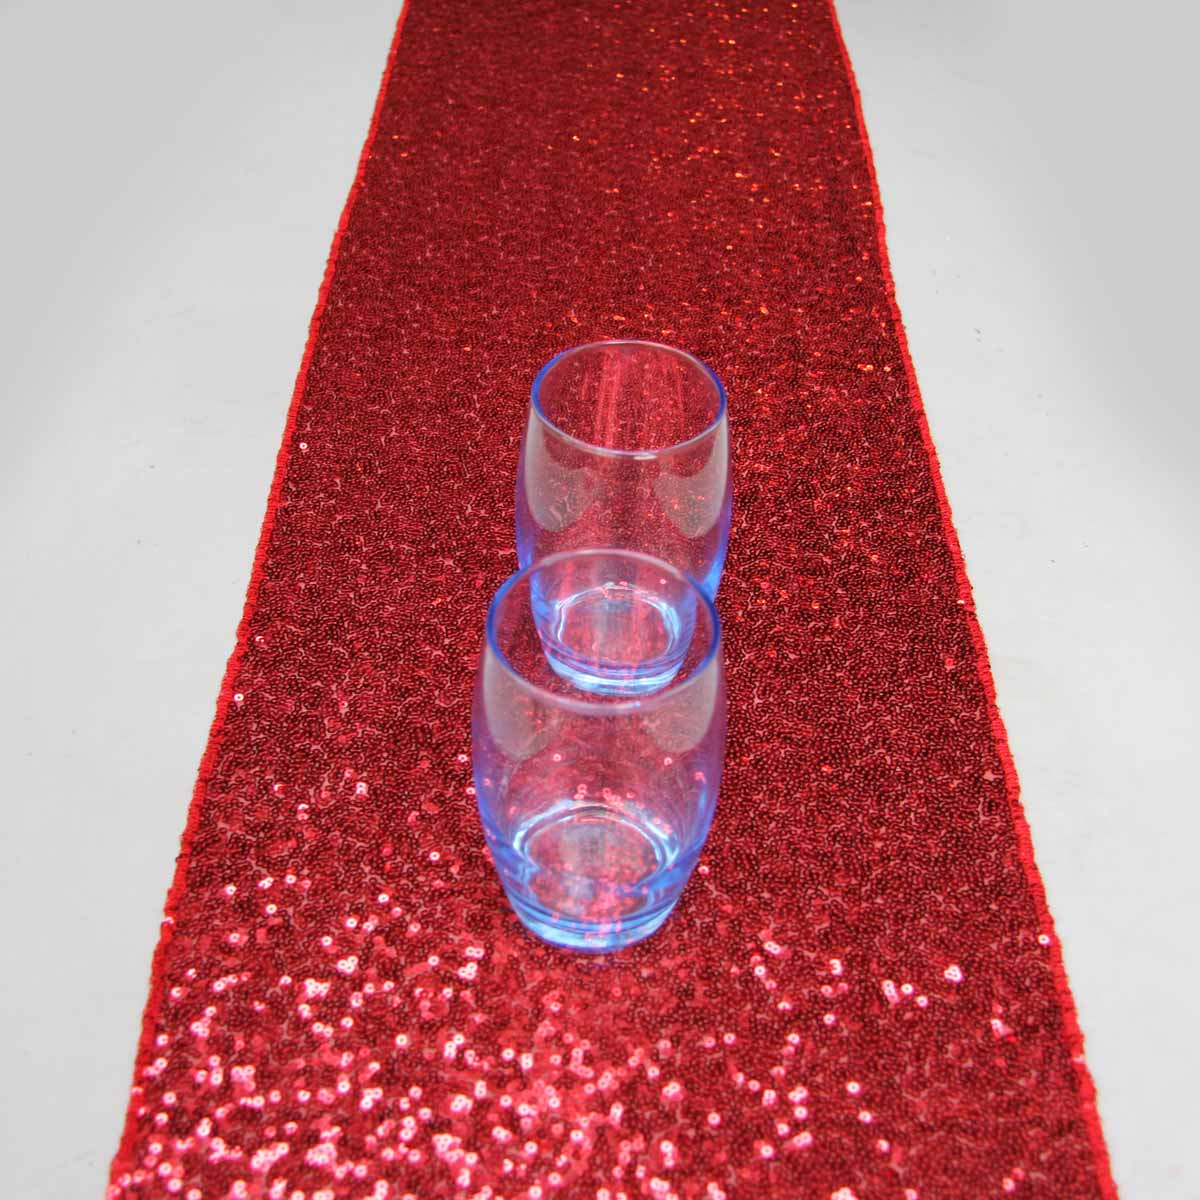 10 Pcs 12u0027u0027x120u0027u0027/30cmx305cm Luxury Red Sequin Table Runner Wedding Party  Table Decoration Solid Color Table Runners In Table Runners From Home U0026  Garden On ...